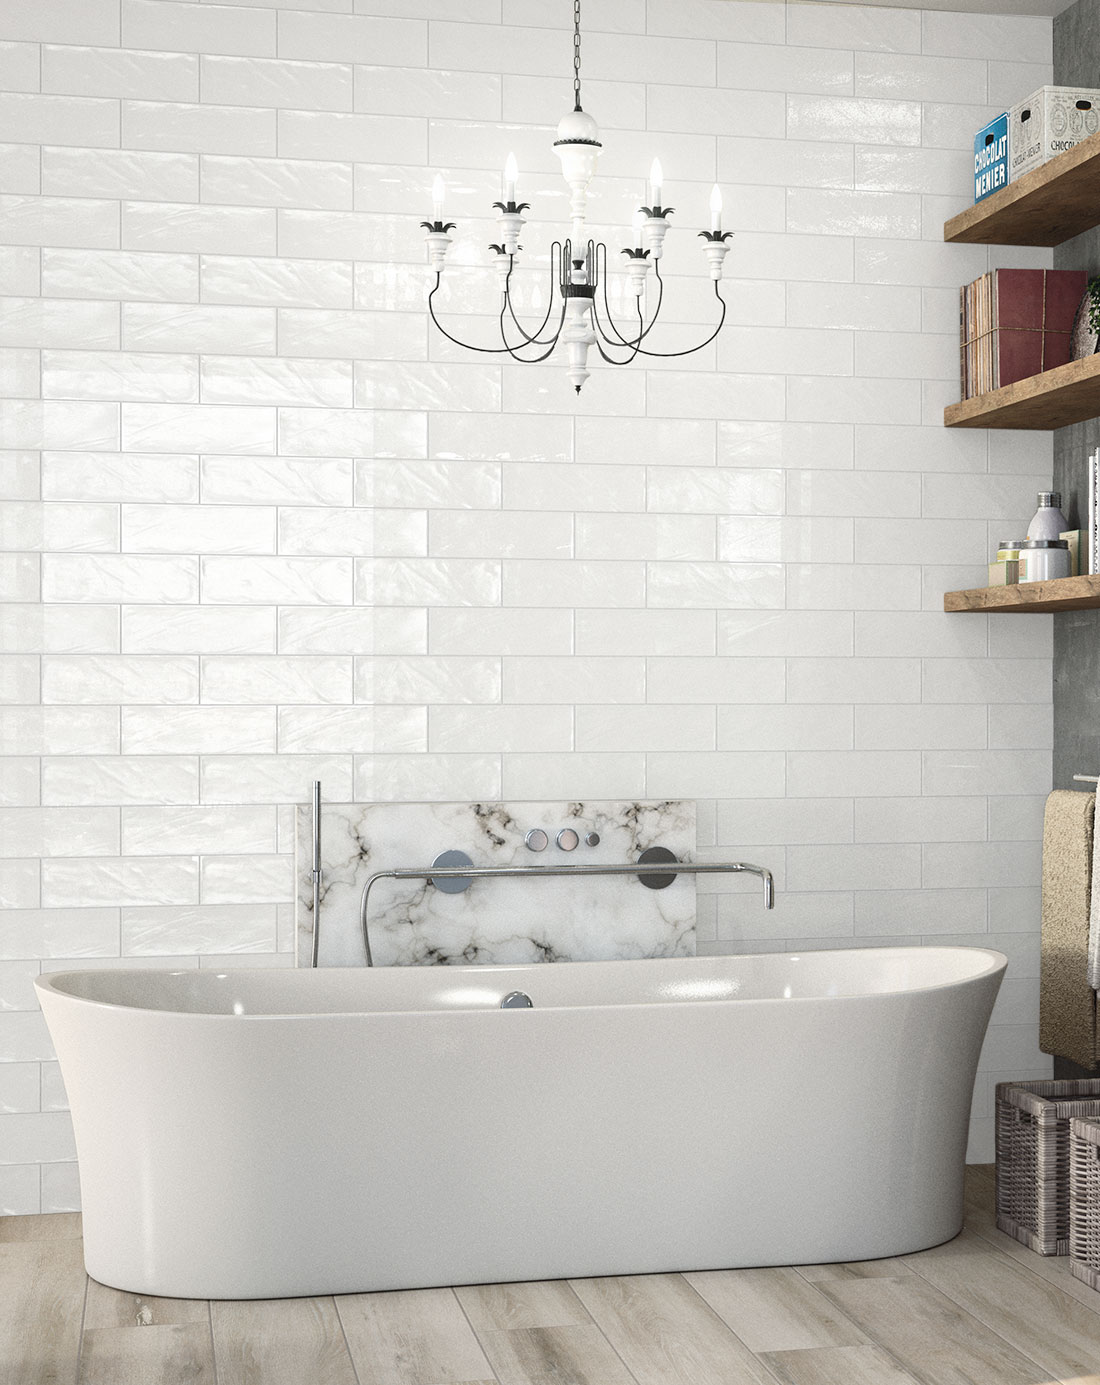 Bulevar ripple antique white wall tiles bathroom tiles direct - Deco wc zen ...